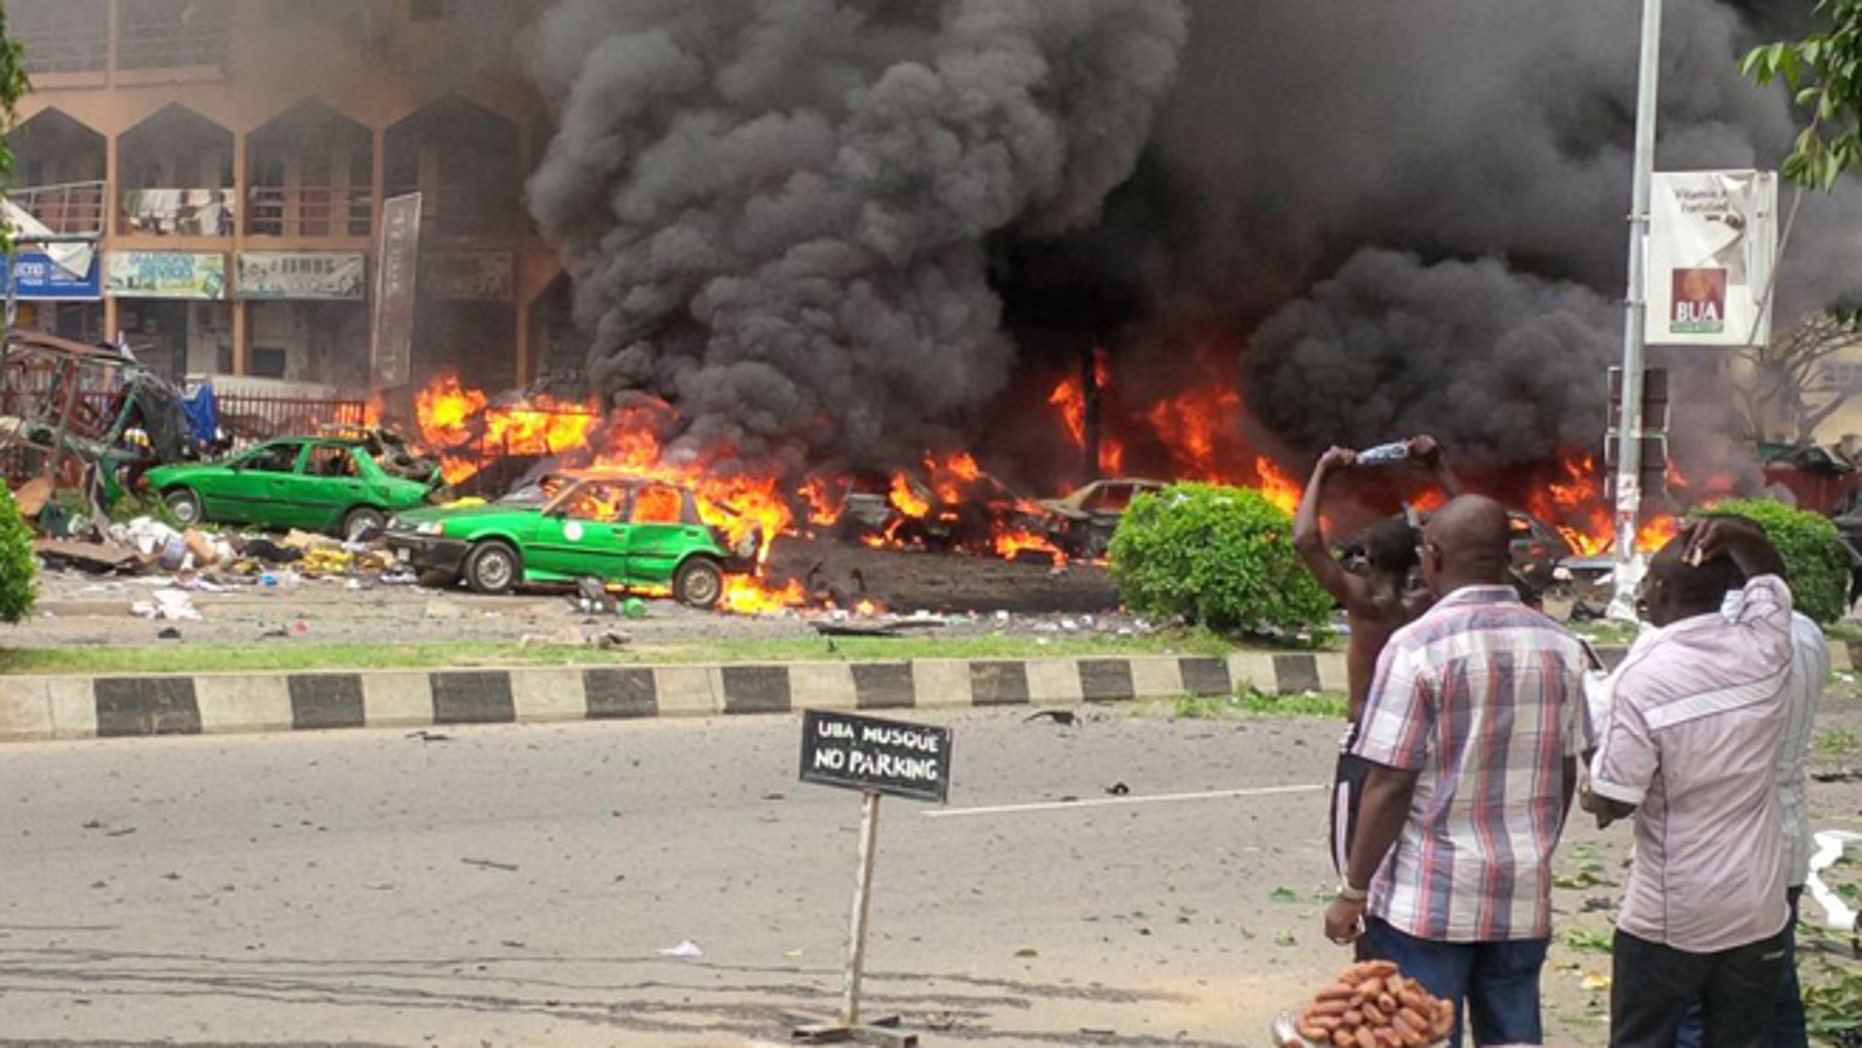 June 25, 2014: People watch as smoke fills the sky, after an explosion, at a shopping mall in Abuja, Nigeria. An explosion rocked a shopping mall in Nigeria's capital, Abuja, on Wednesday and police say at least over 20 people have been killed and many wounded.